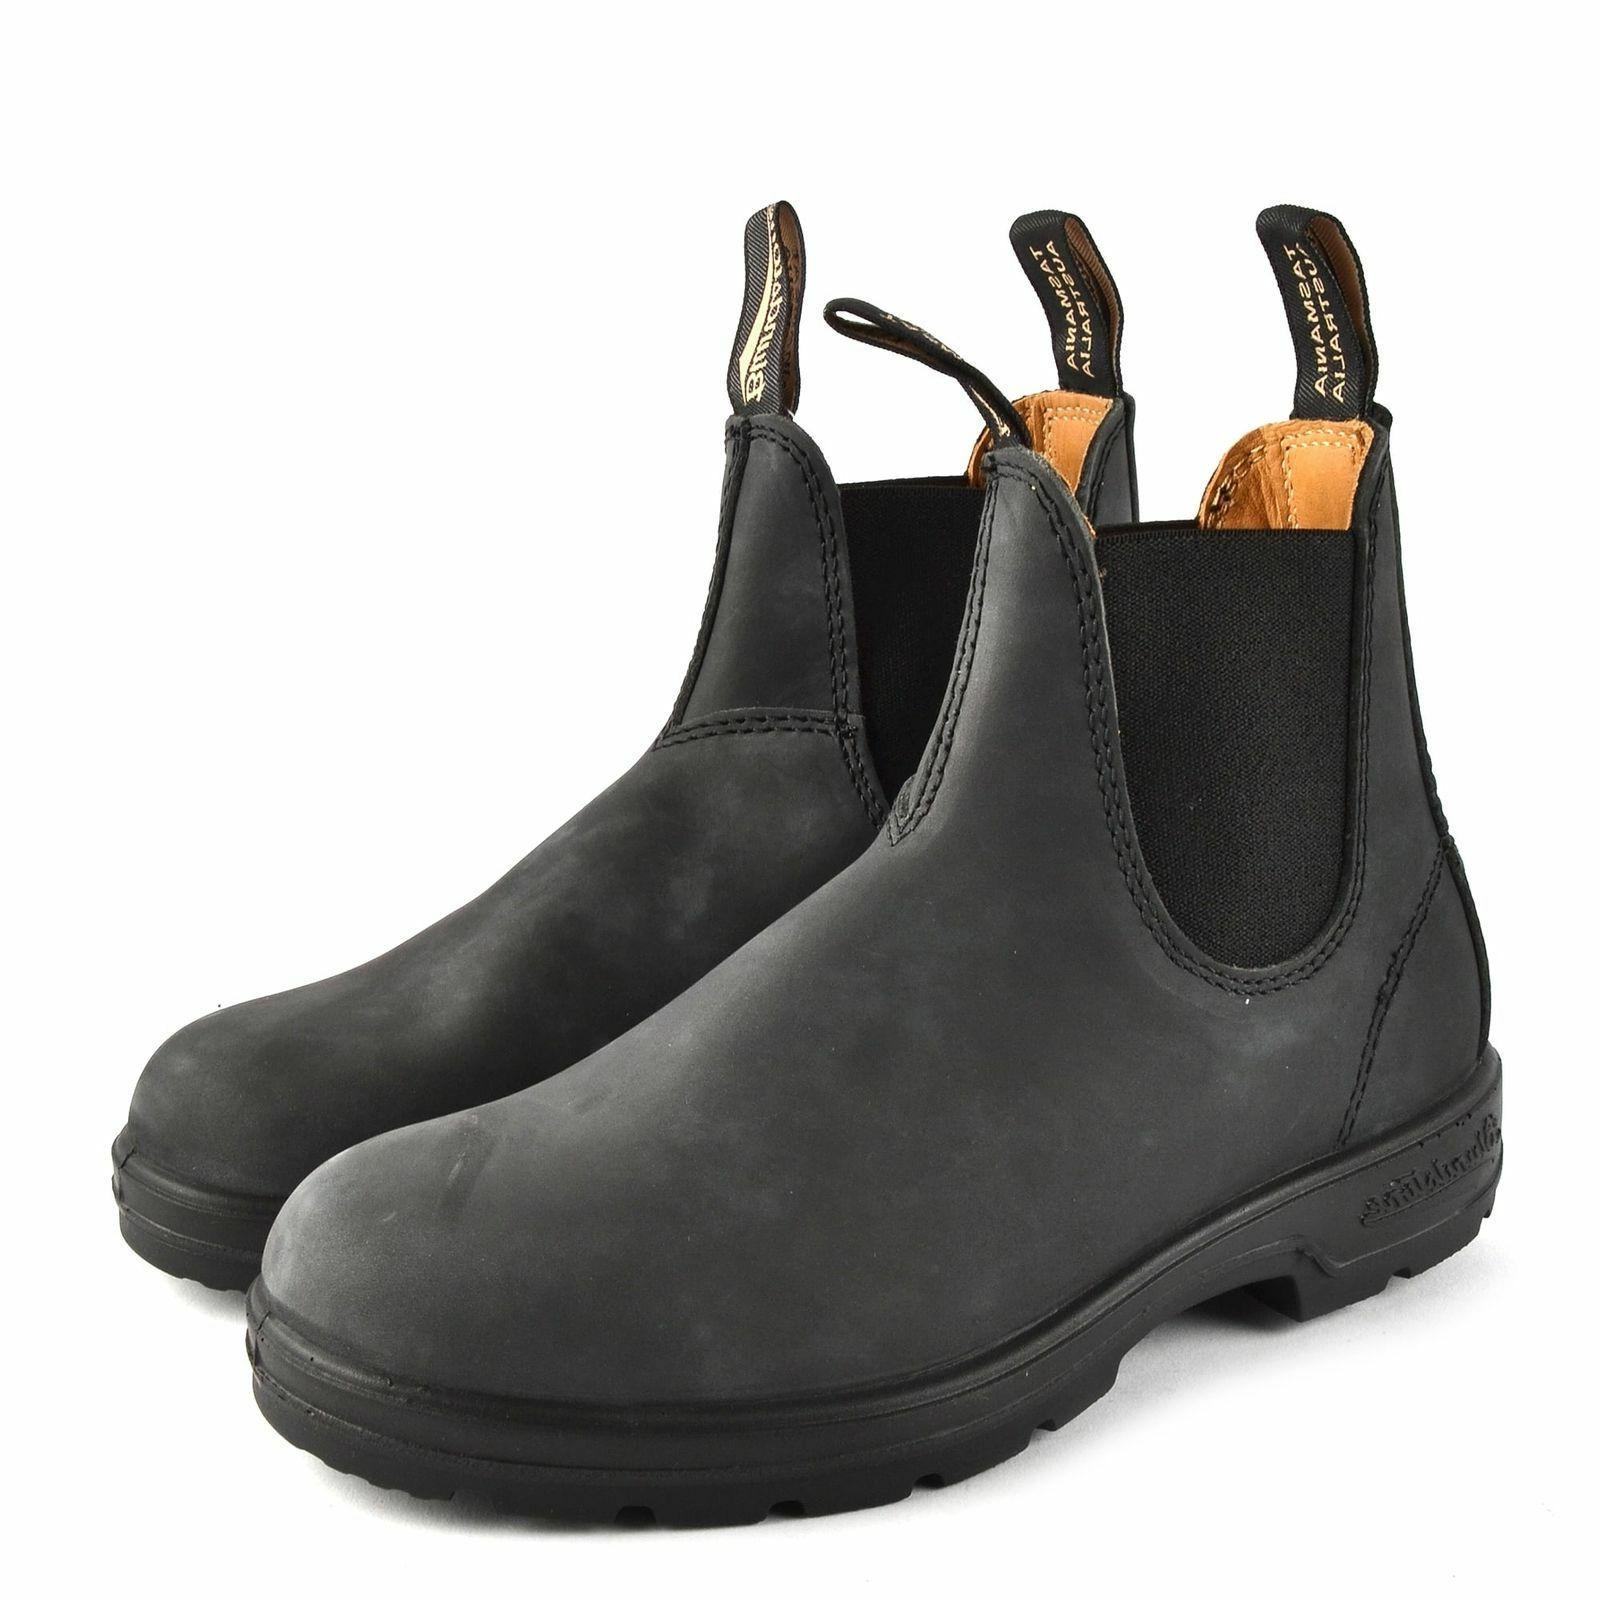 NEW Blundstone Style Rustic Black Boots for